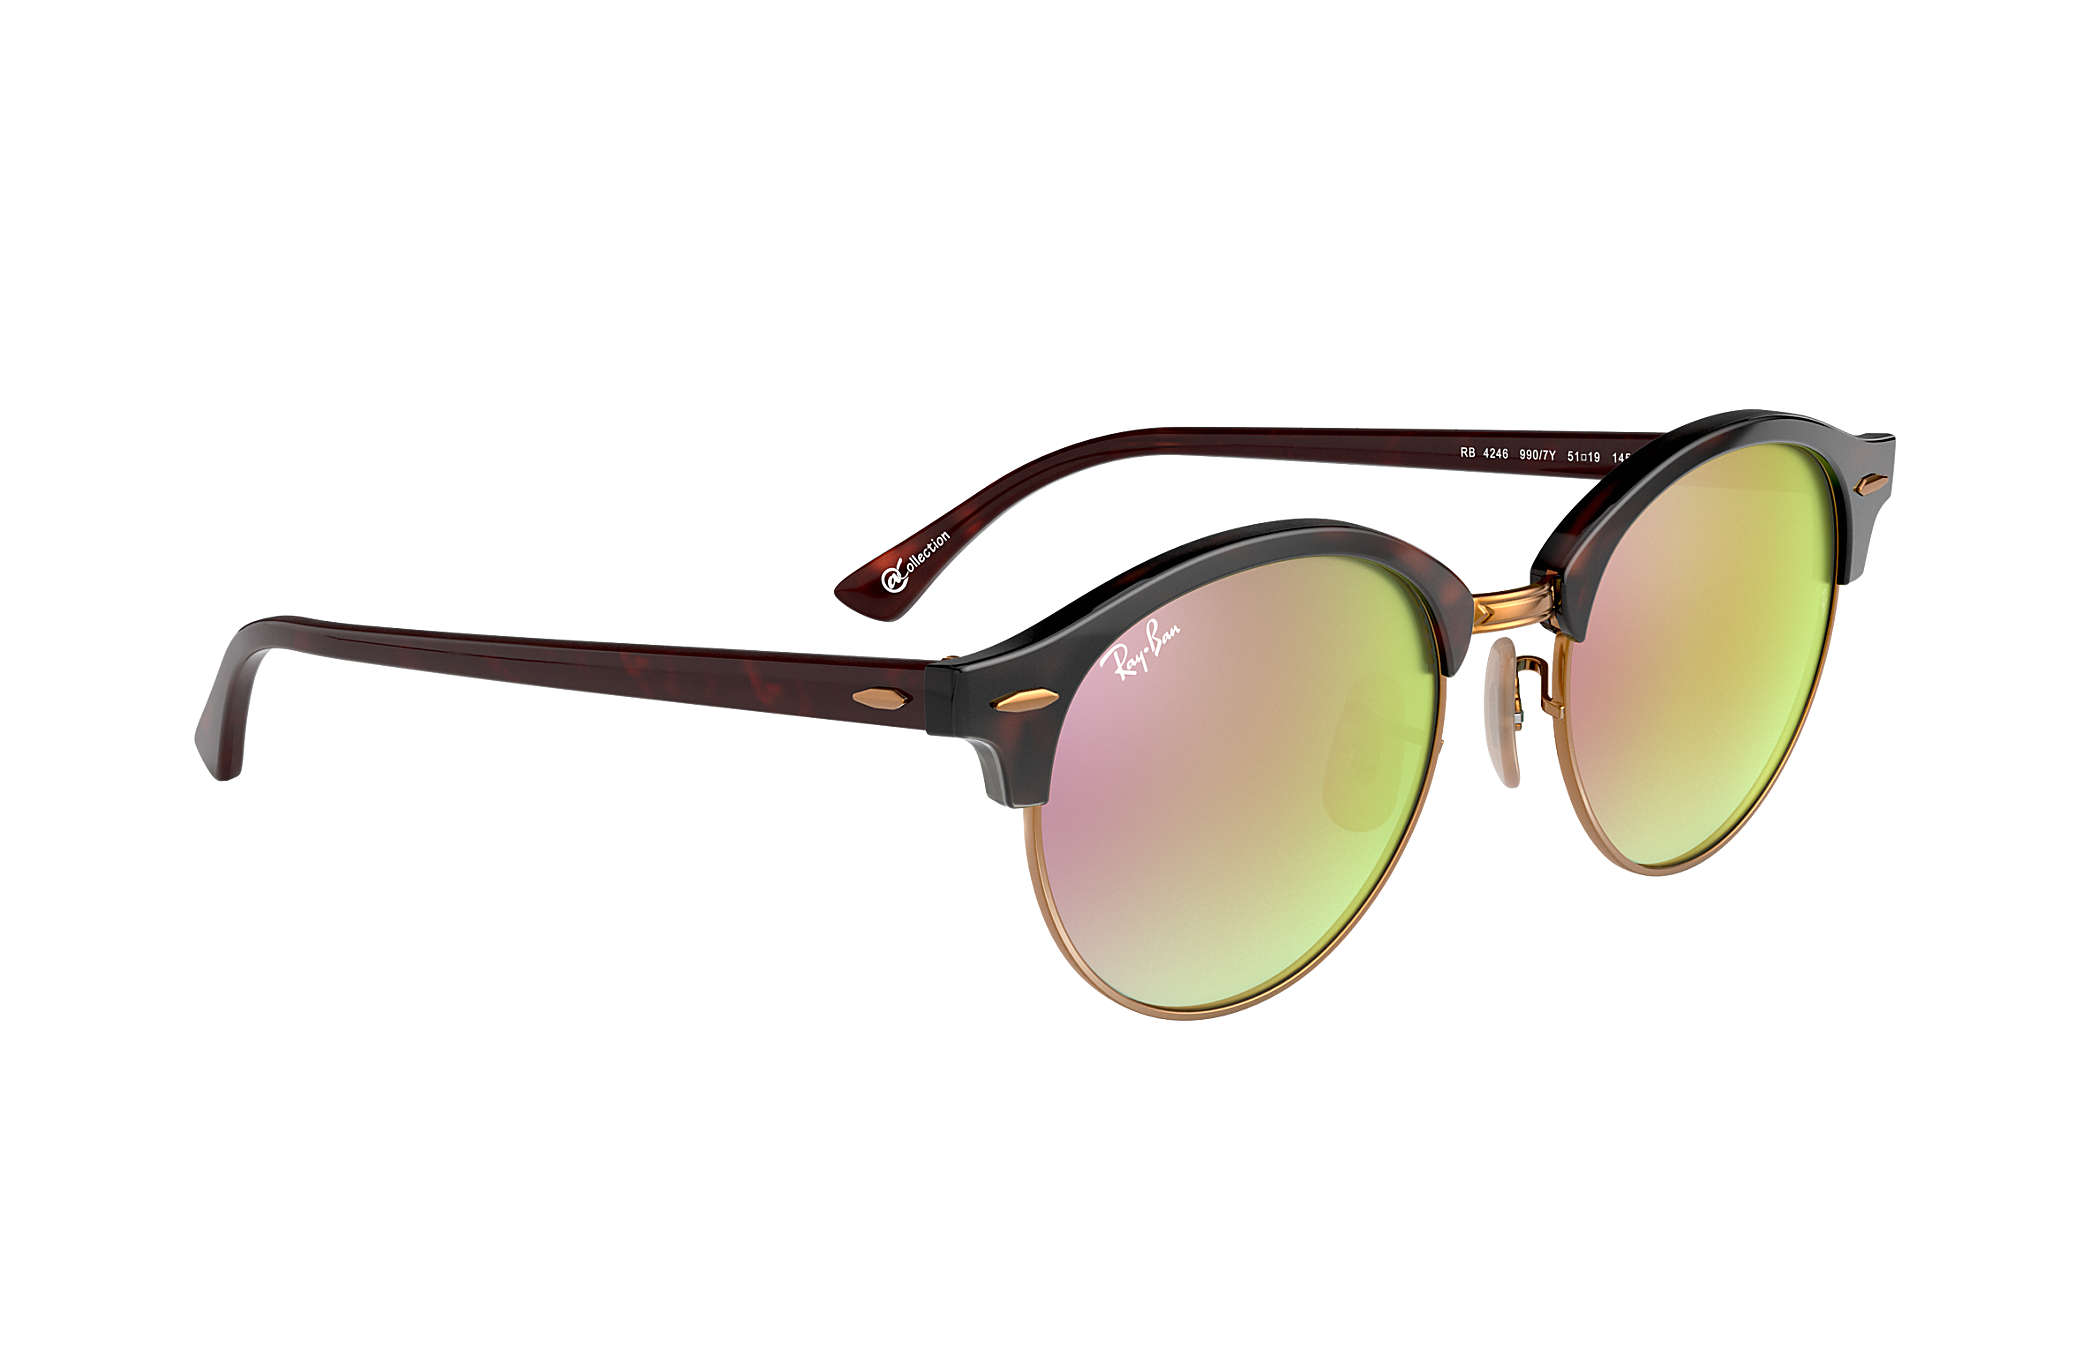 0201b00476 Ray-Ban Clubround  collection RB4246 Tortoise - Acetate - Copper ...